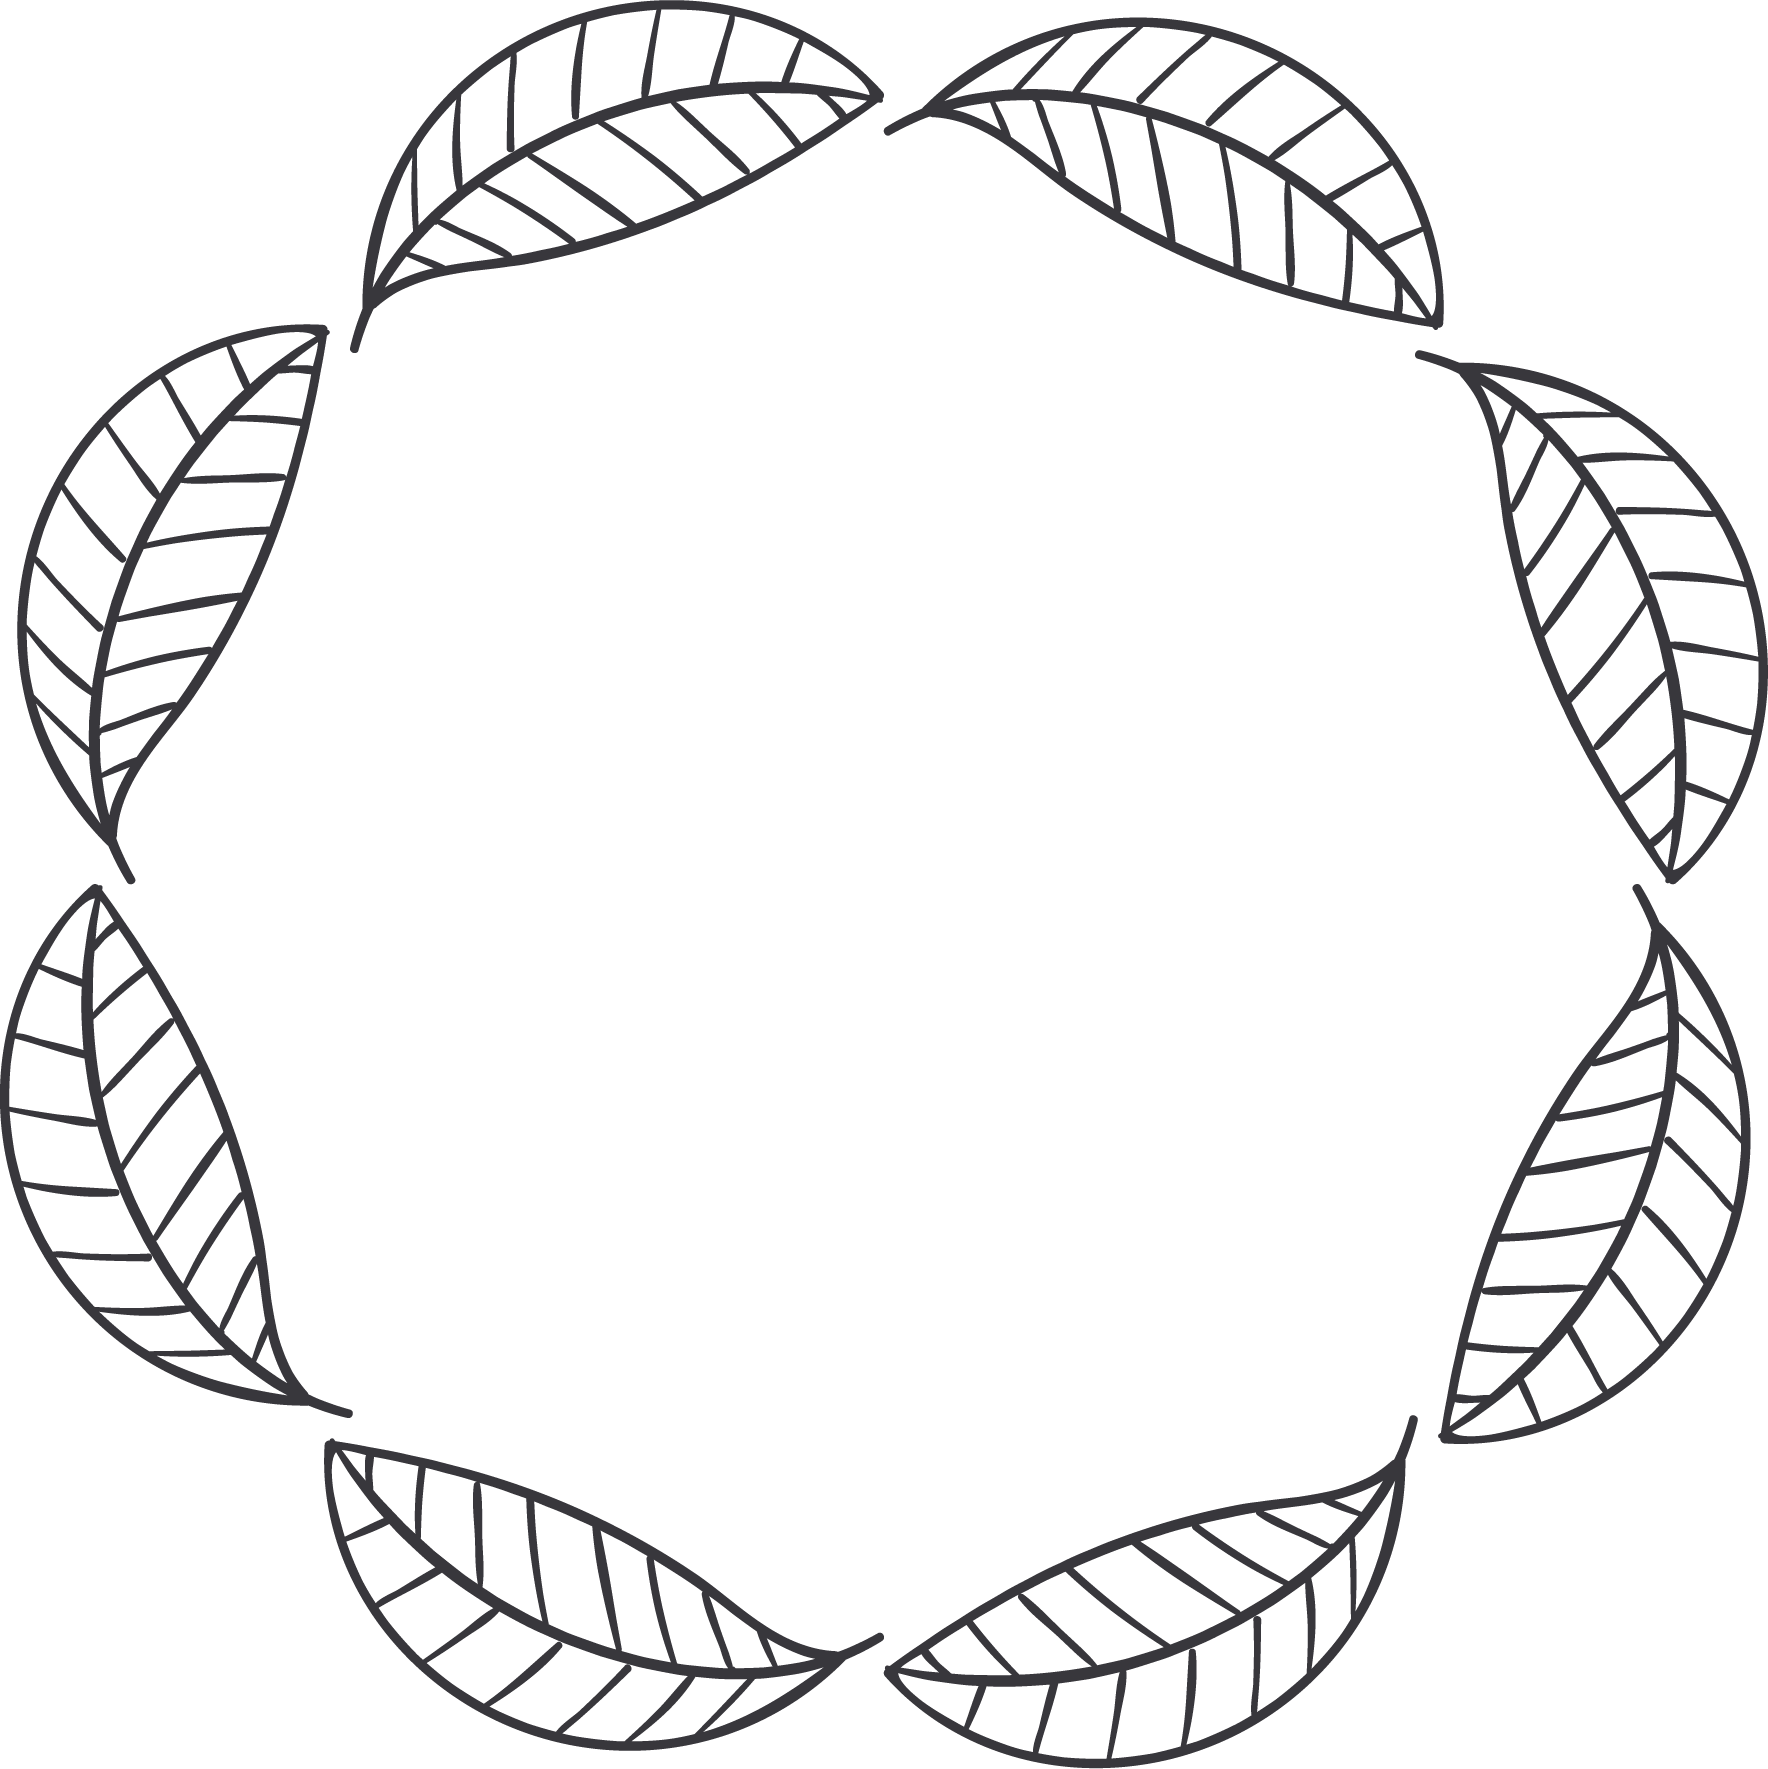 Leaf circle png. Disk clip art simple